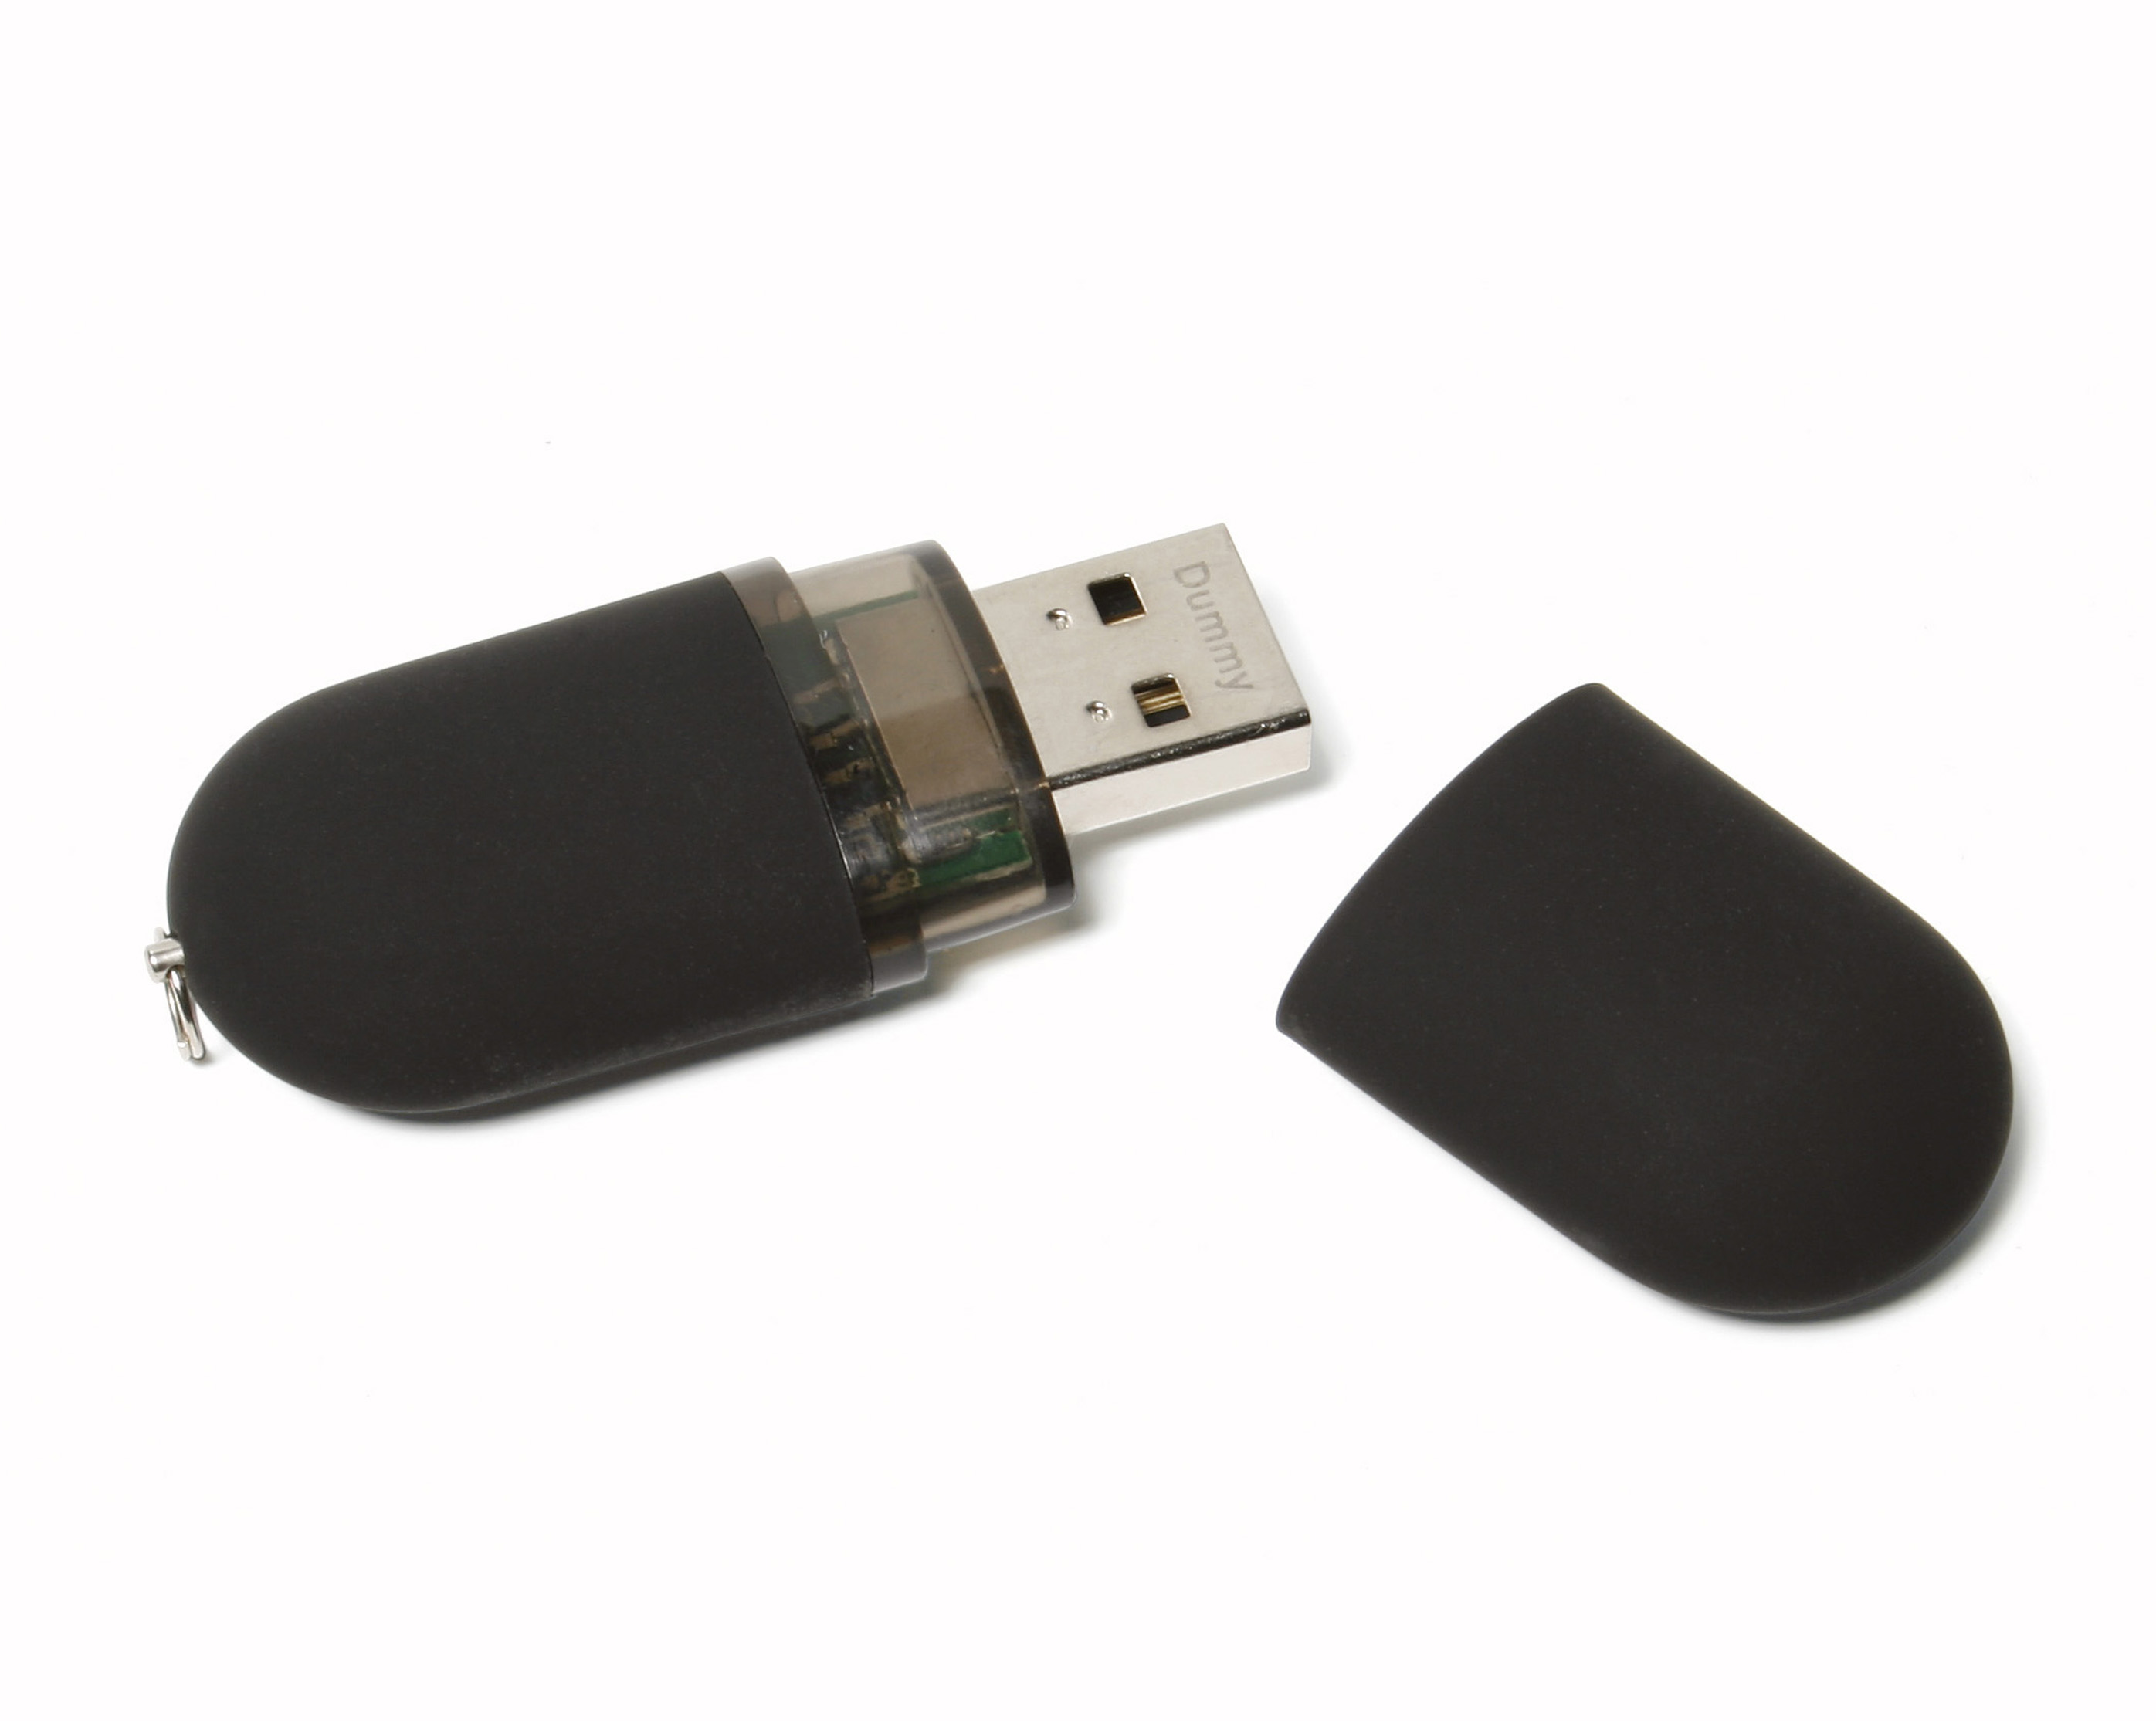 Recycled Pod USB FlashDrive